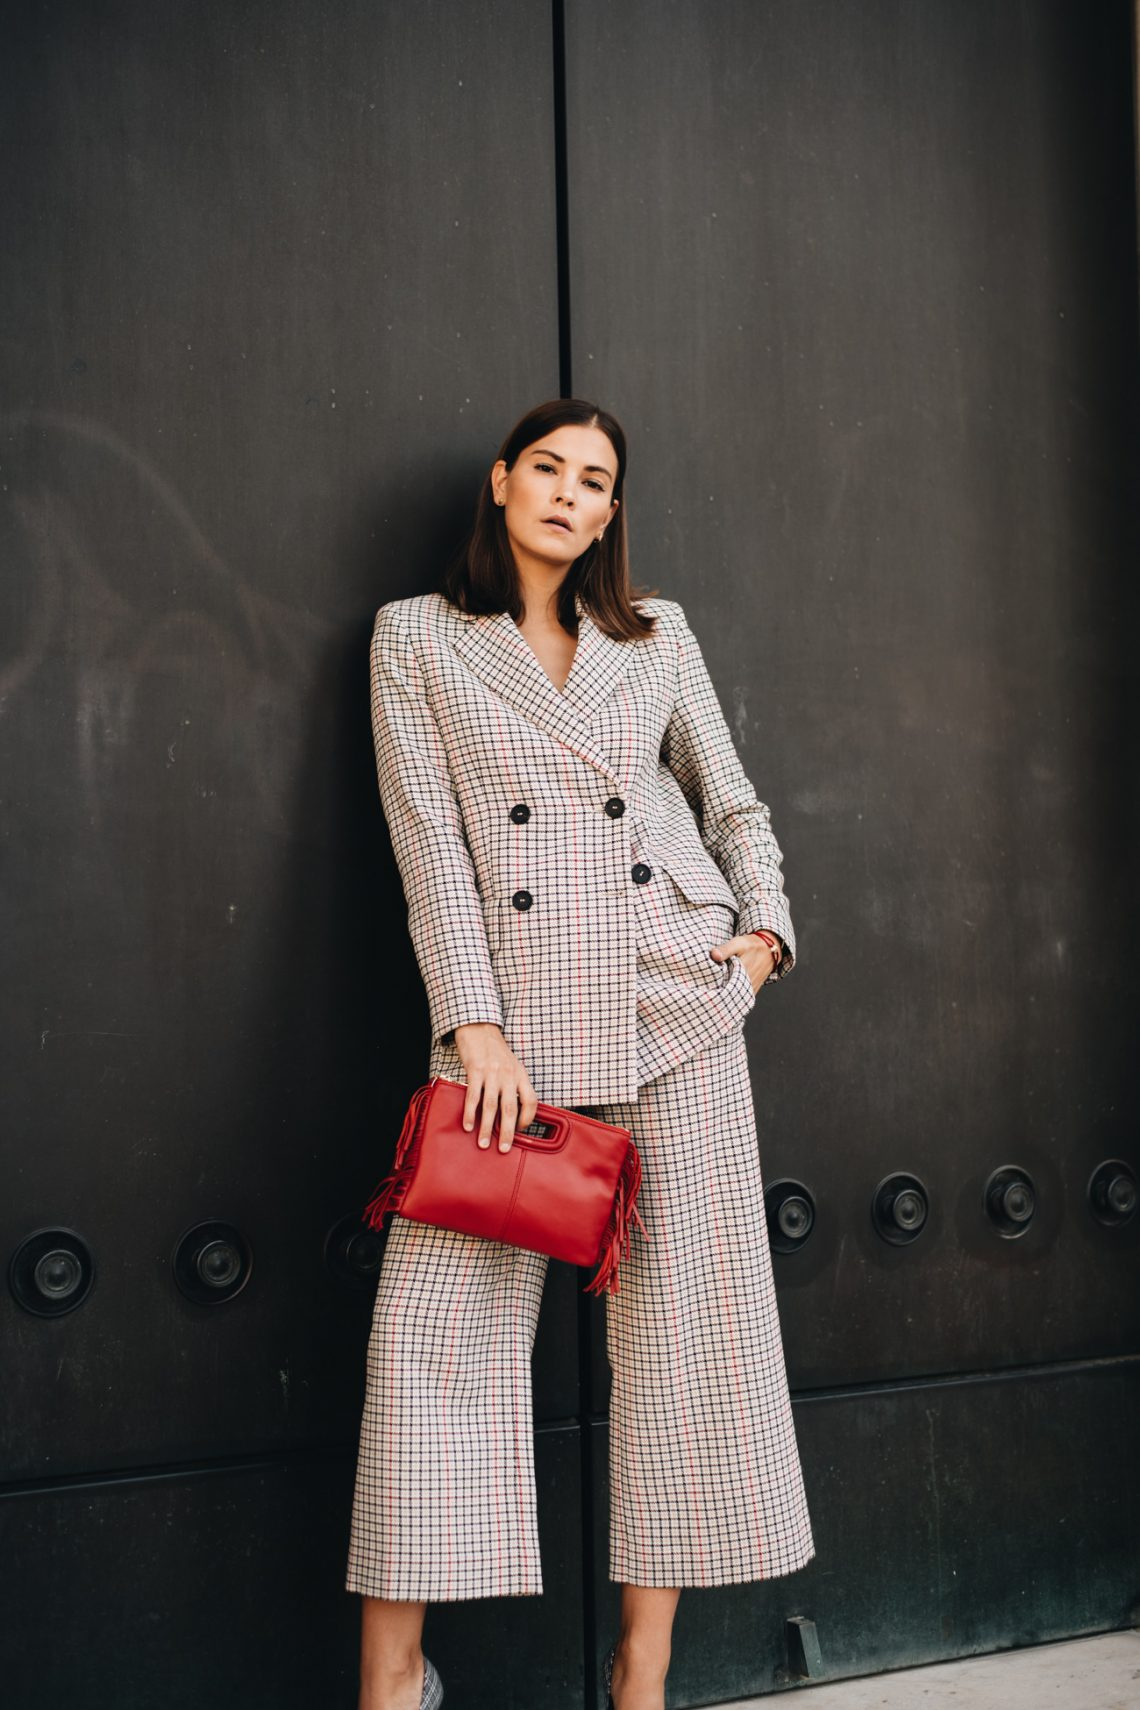 Steal Her Style: All Over Checks